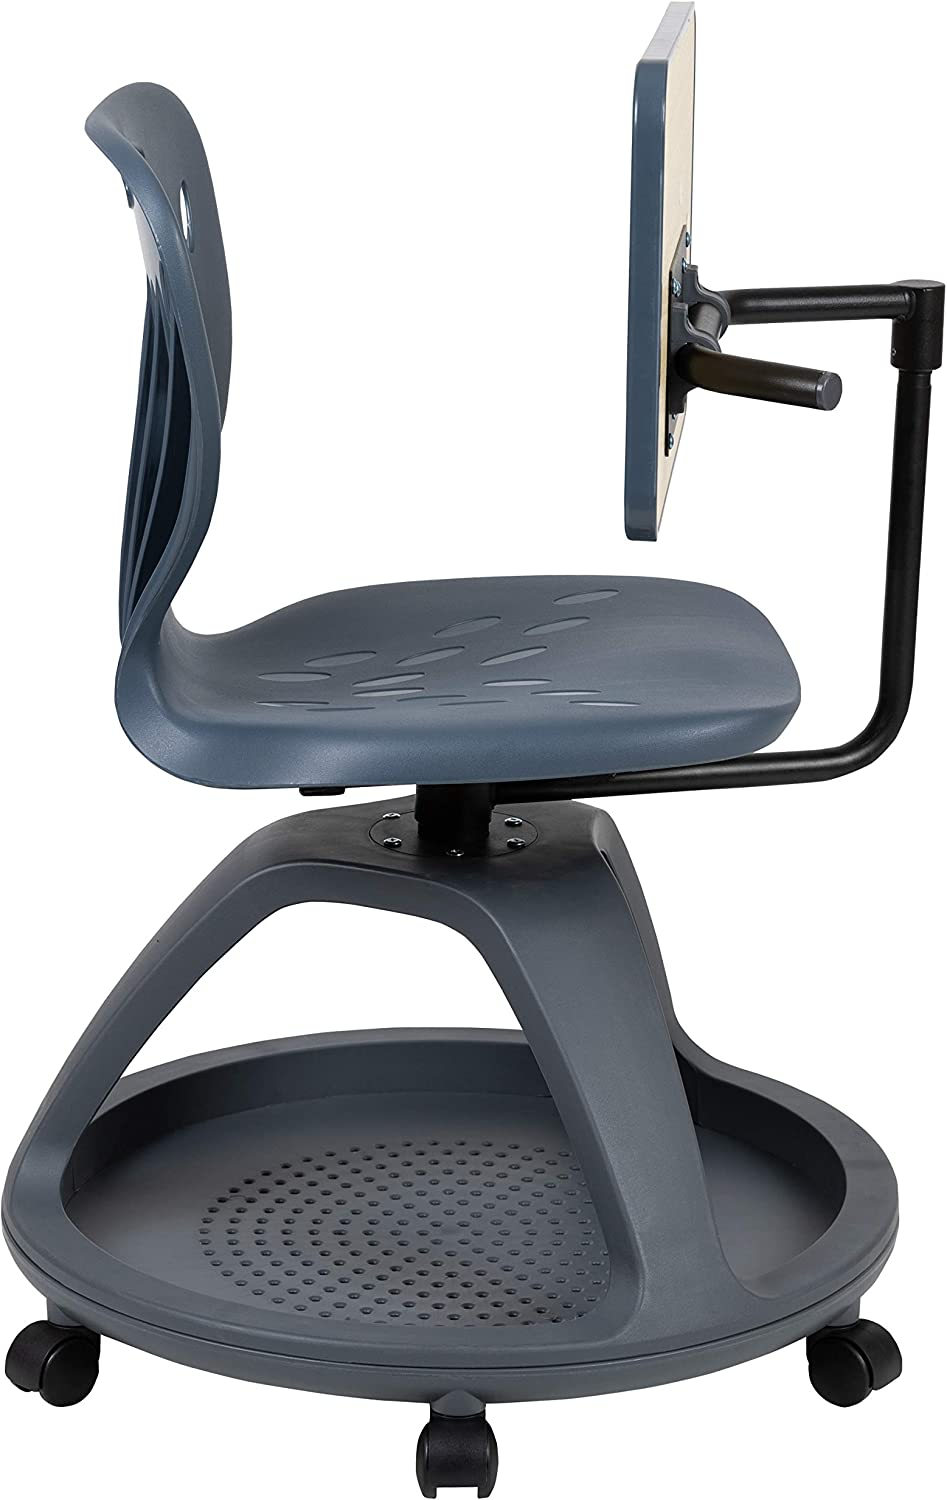 Flash Furniture Dark Gray Mobile Desk Chair with 360 Degree Tablet Rotation and Under Seat Storage Cubby